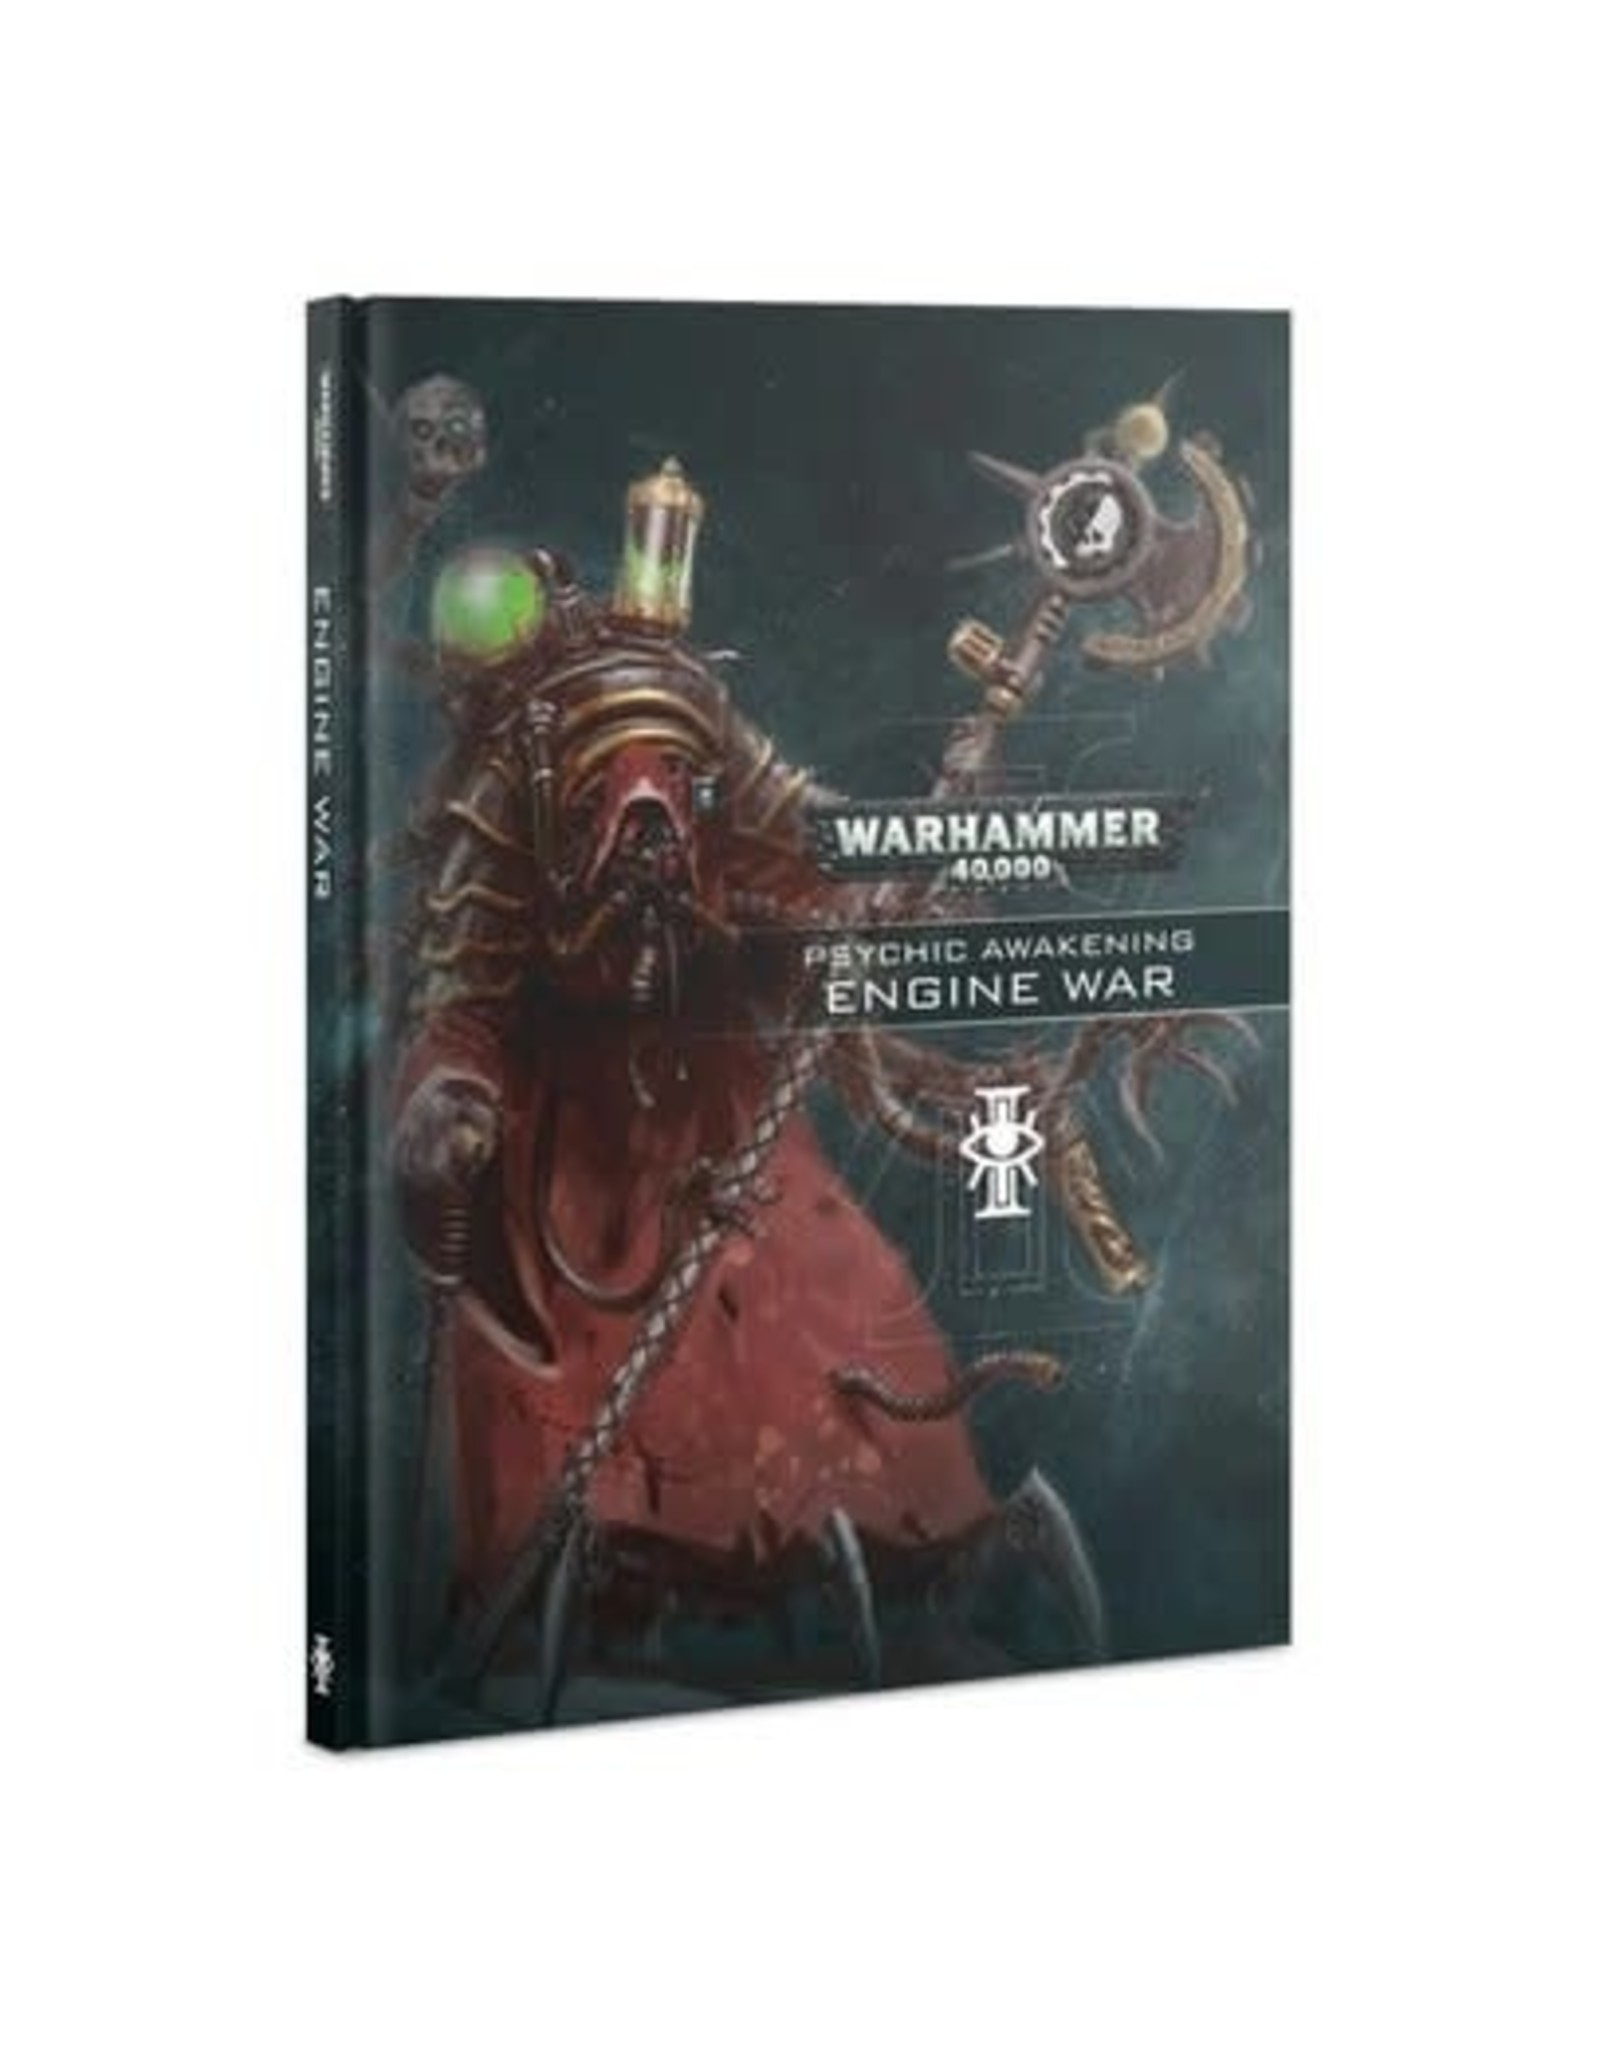 Games Workshop Psychic Awaking Engine War (40K)